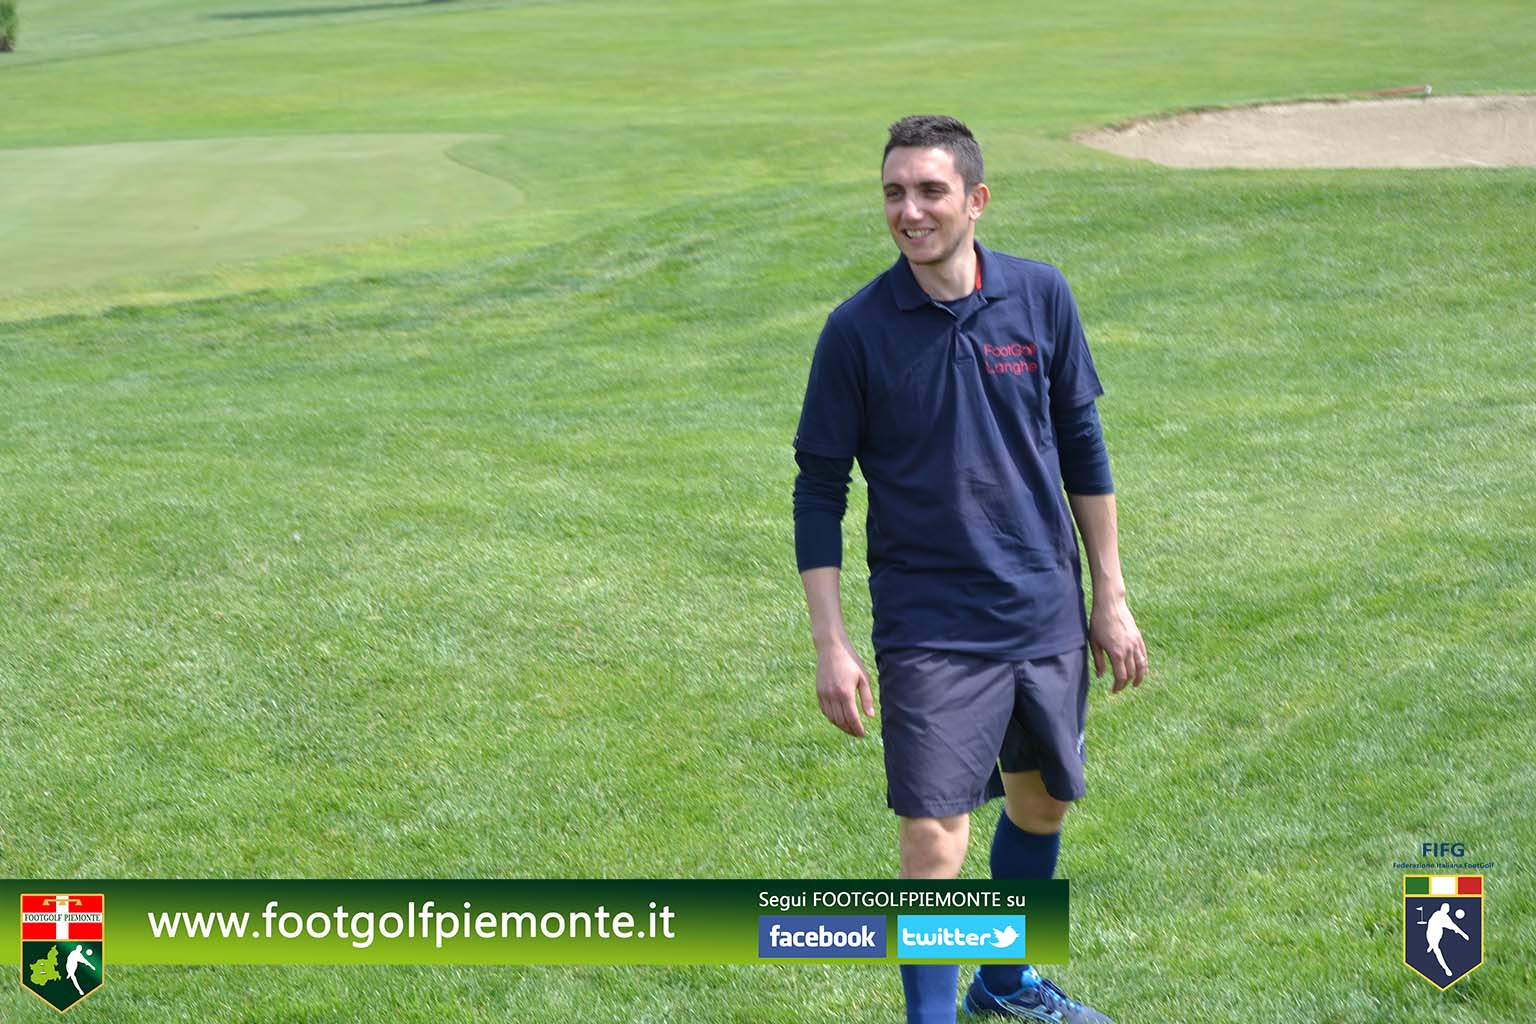 FOTO 9 Regions' Cup Footgolf Piemonte 2016 Golf Città di Asti (At) 30apr16-67